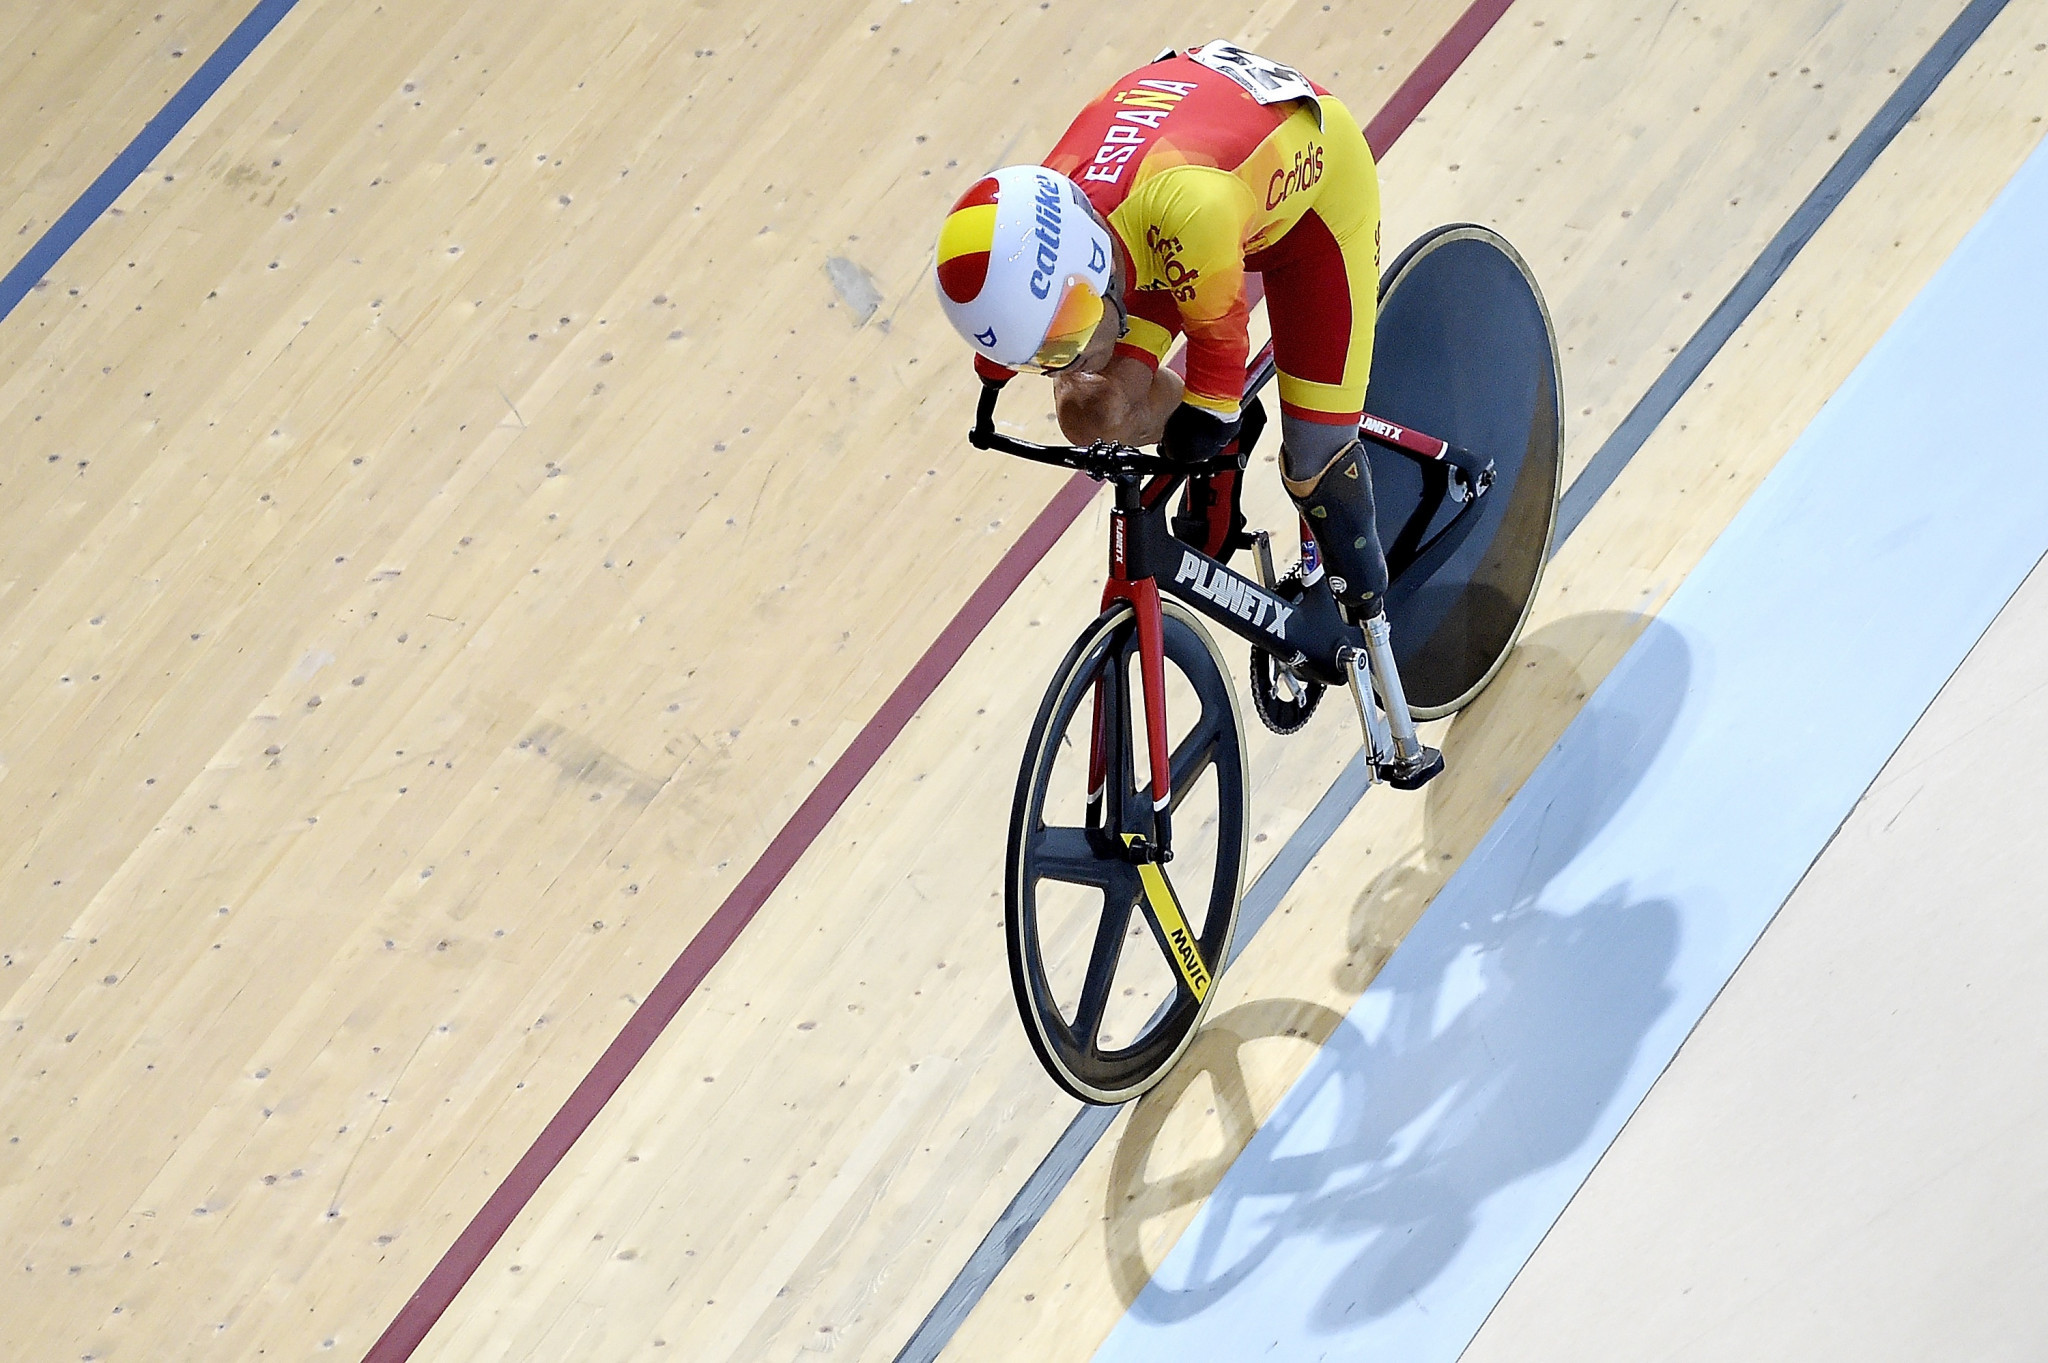 Spain's Ricardo Ten Argiles is expected to challenge Li Zhangyu in the men's C1-3 1000m and C1 3,000m individual pursuit after switching sports from swimming ©Getty Images